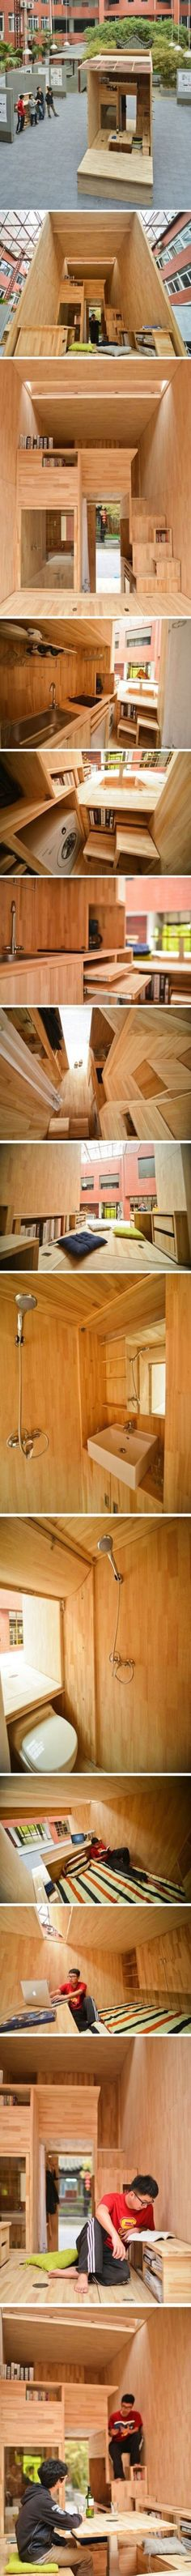 Tiny House - student architect in China constructs his own 75 ft² wooden house complete with kitchen, bathroom, laundry room, and even a patio. Tiny House Cabin, Tiny House Living, Small Living, Mini Loft, Kitchen Shower, Micro House, Compact Living, Compact House, Architecture Student